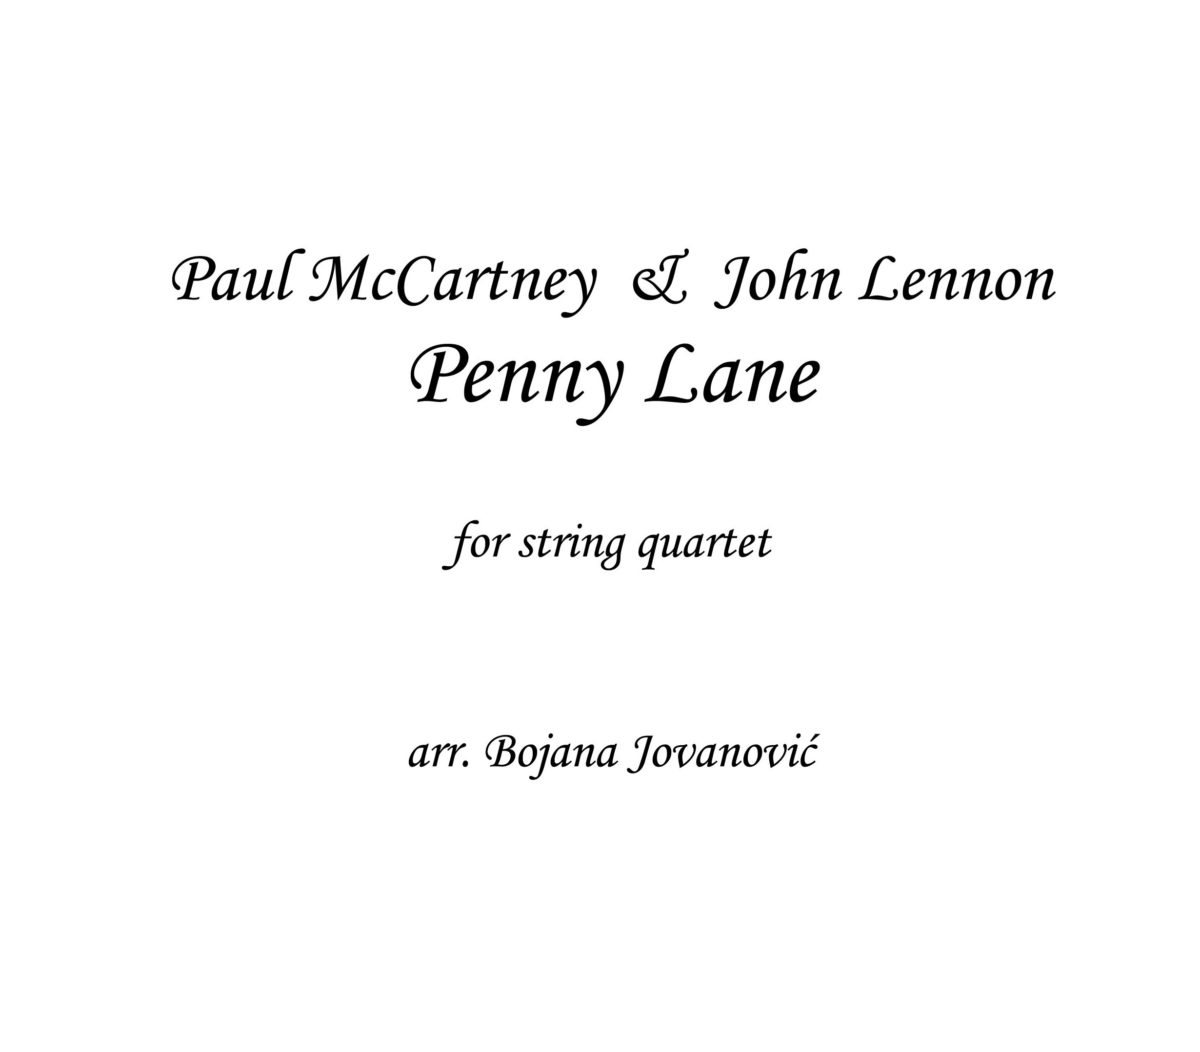 Penny Lane (The Beatles) - Sheet Music